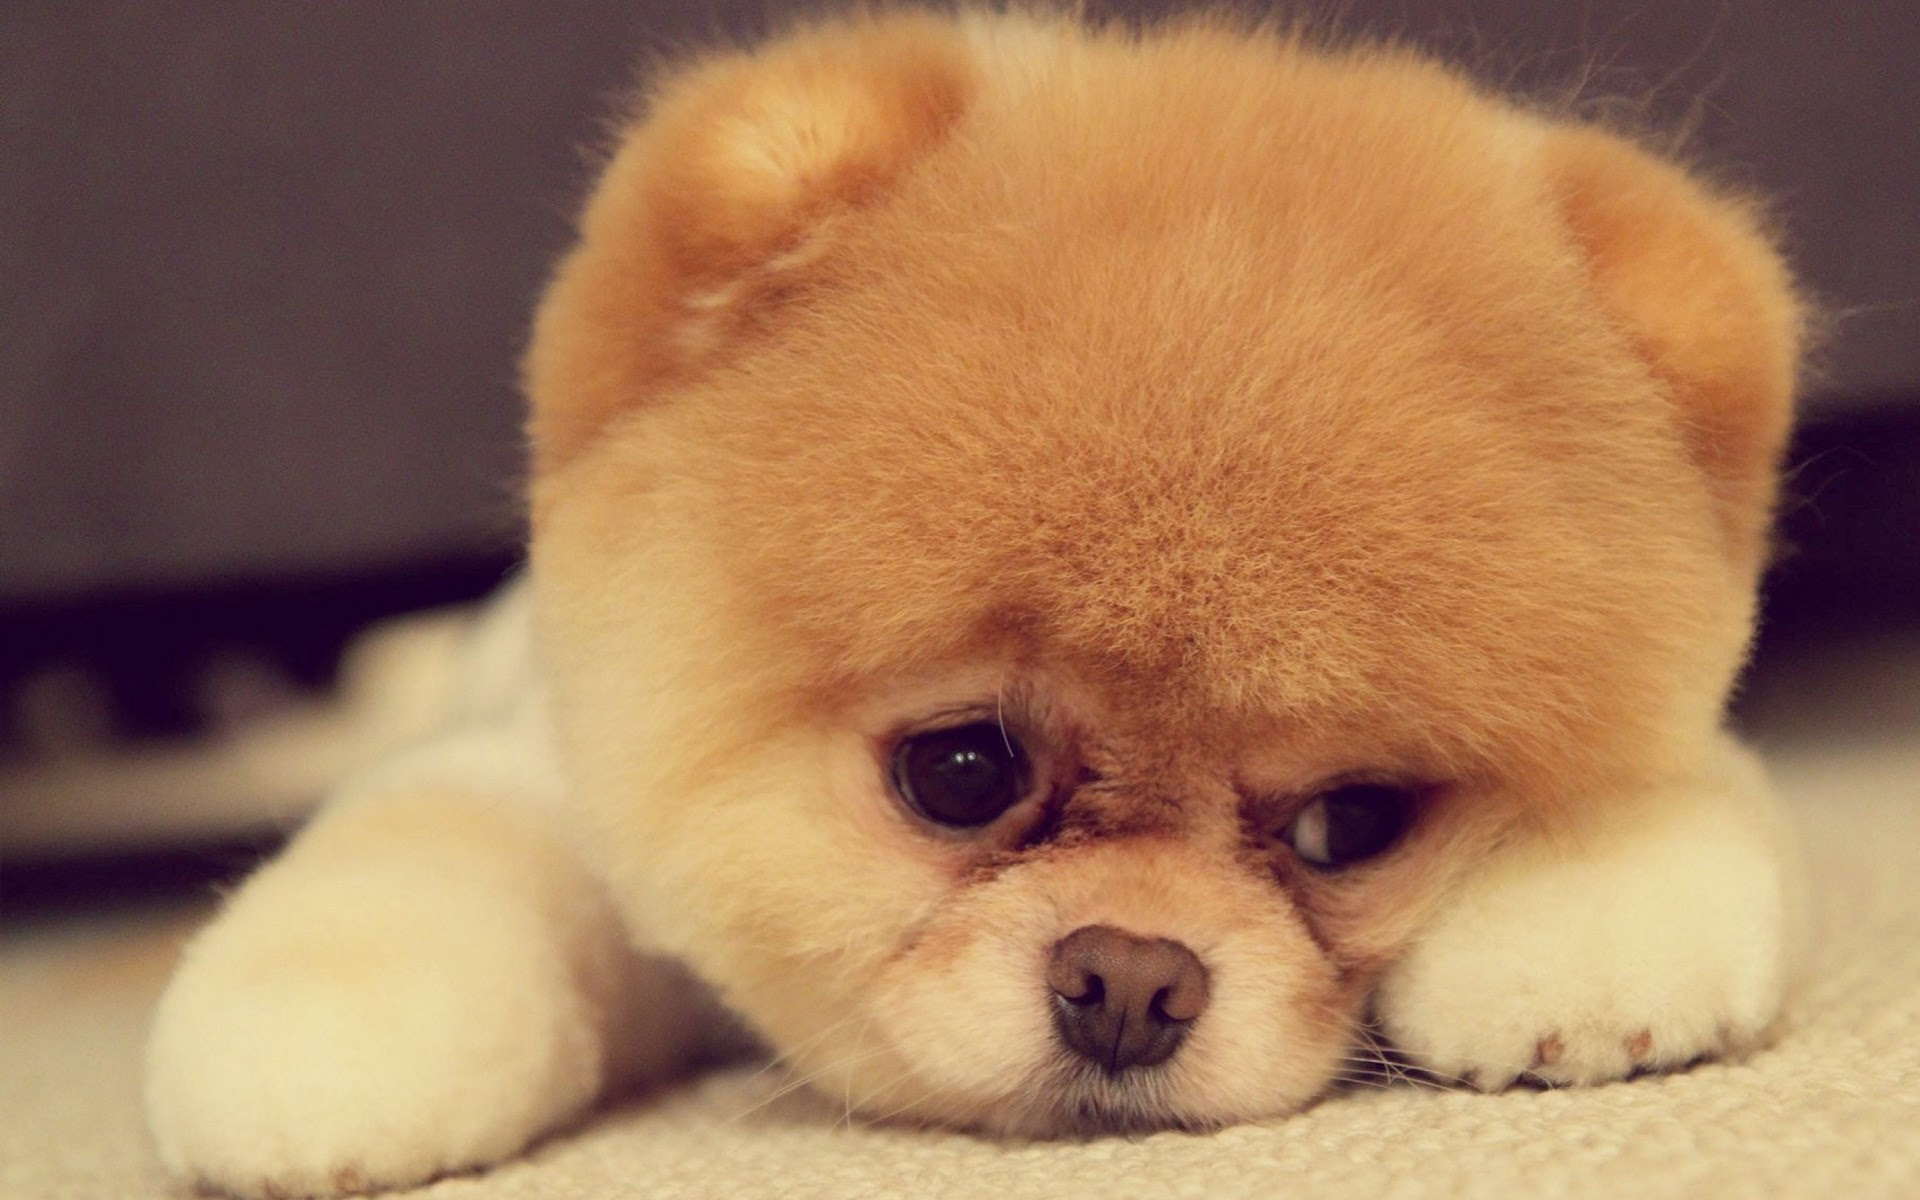 puppy sad face dog animals hd wallpaper image 1920x1200